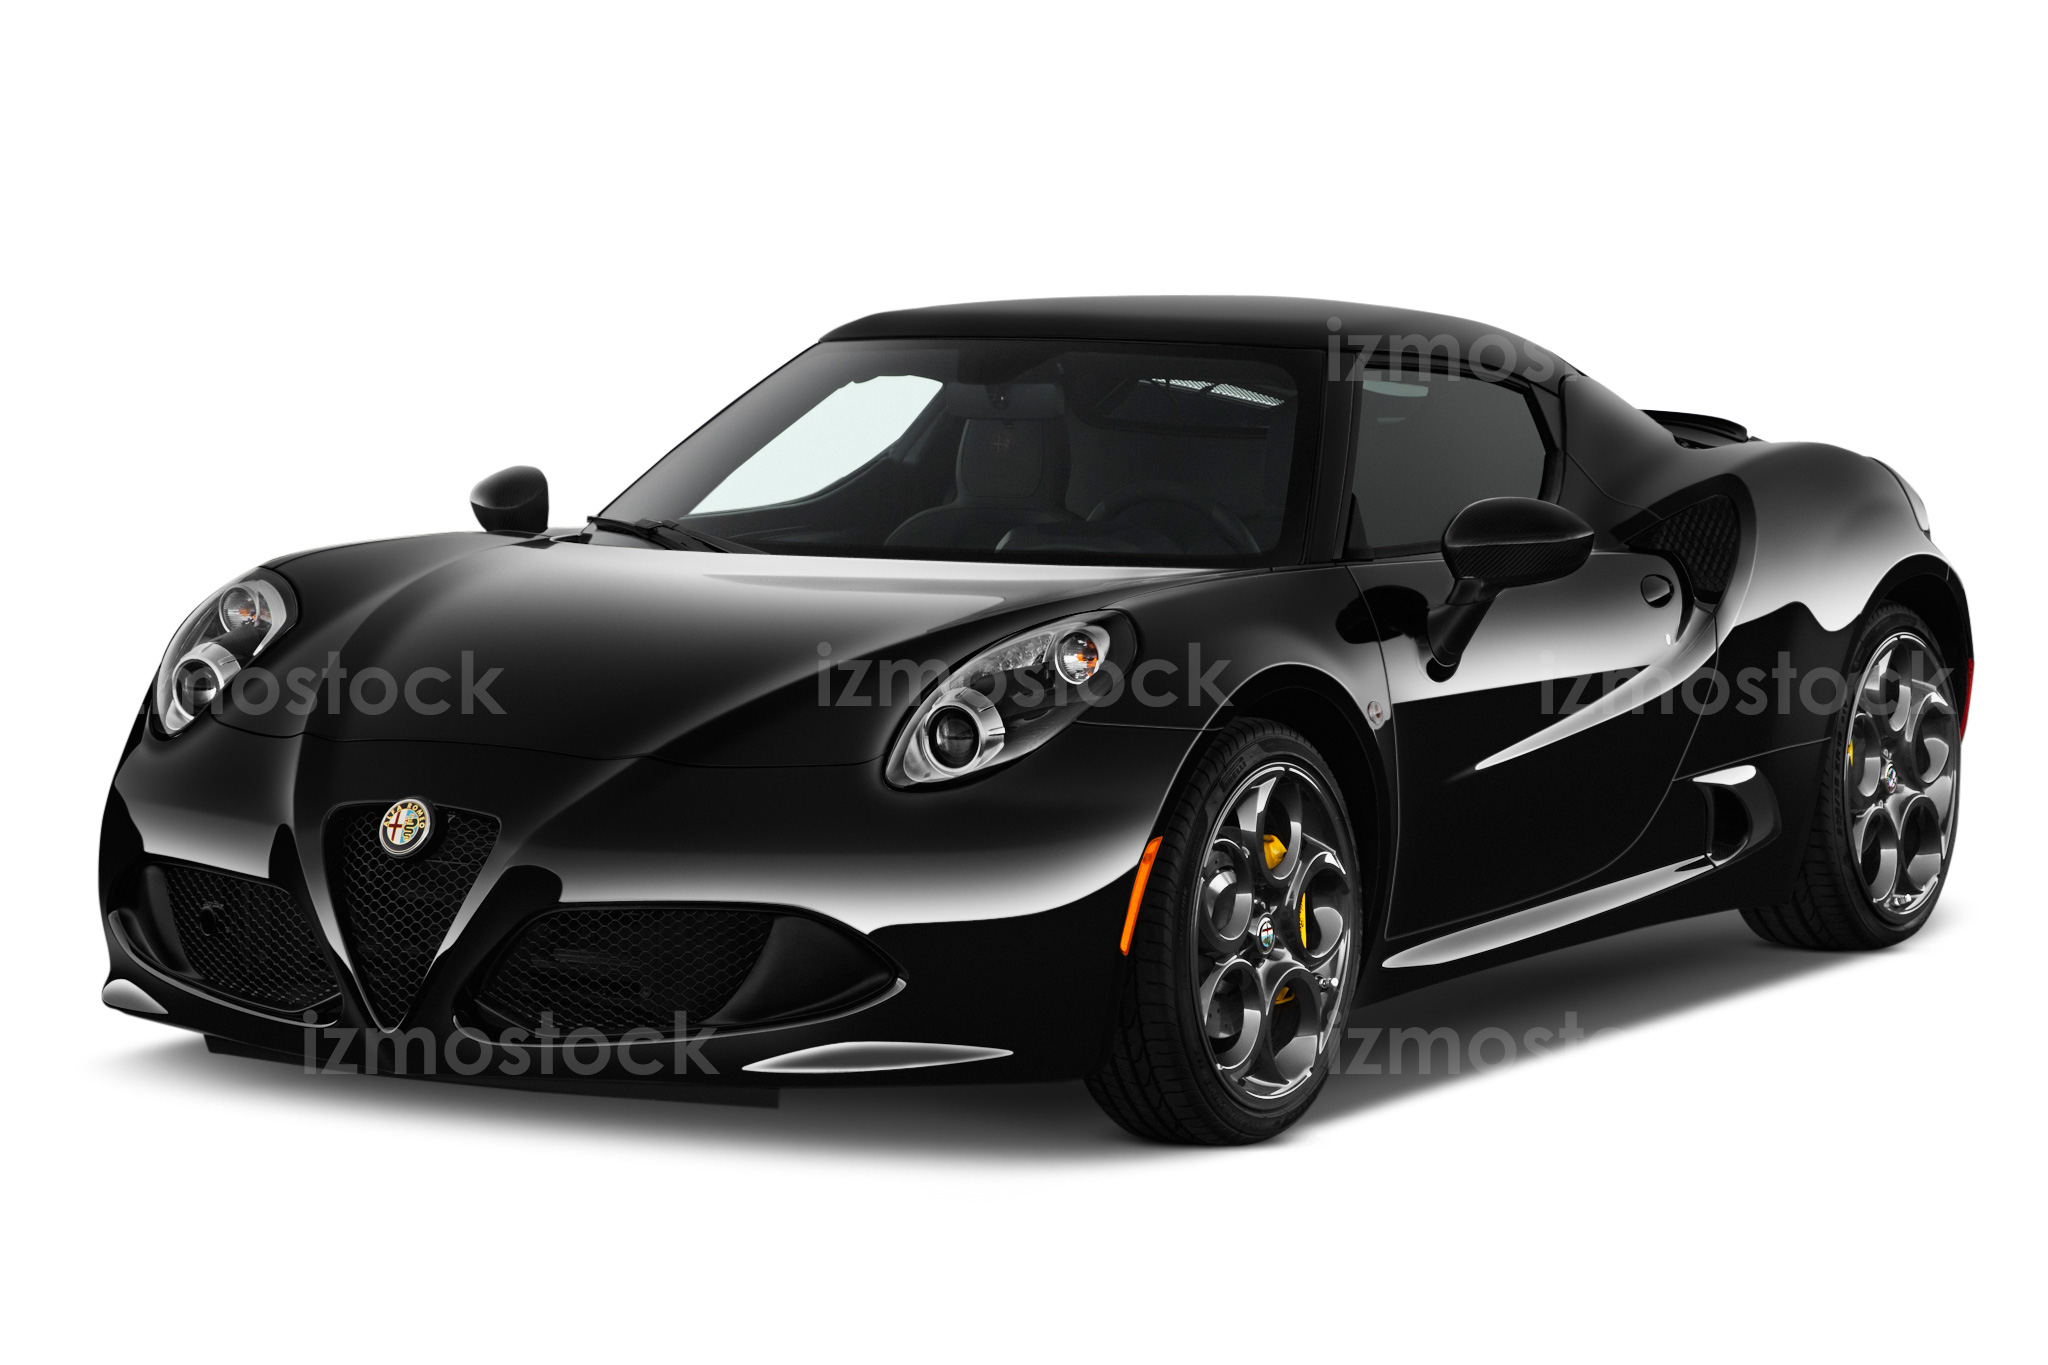 Alfa Romeo 4c >> 2016 Alfa Romeo 4C Coupe: Affordable Track-Ready Sports Car